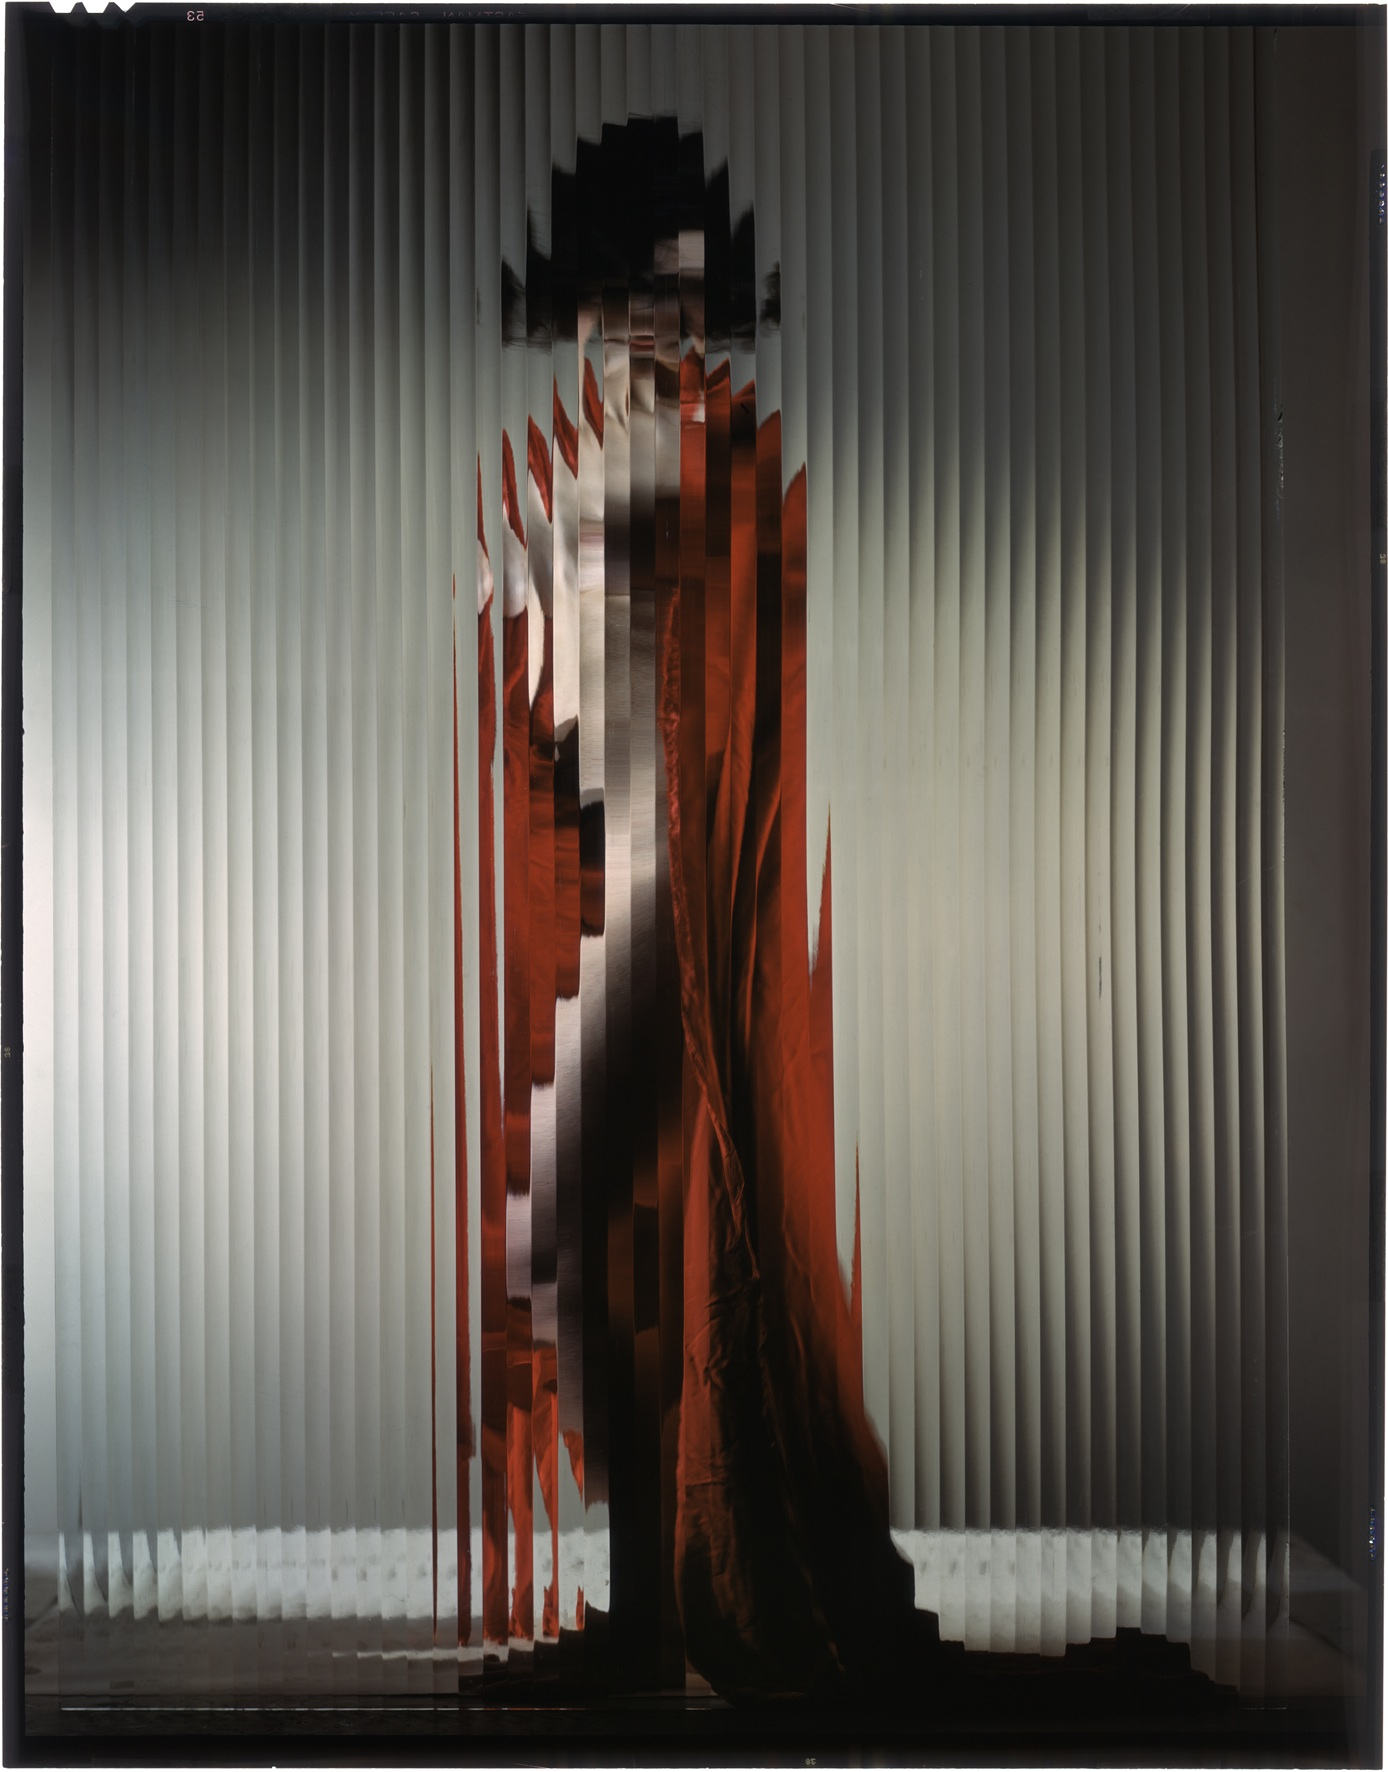 The Picasso Girl by Erwin Blumenfeld for Forbes Magazine